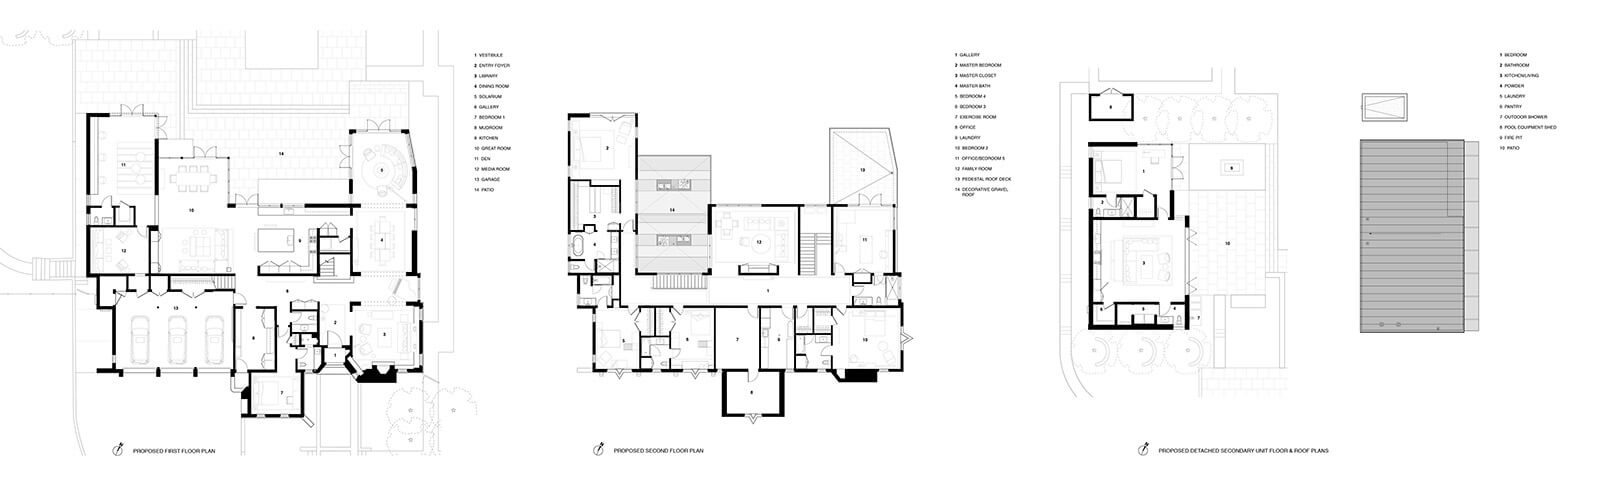 studio vara residential hillsborough drawing plan